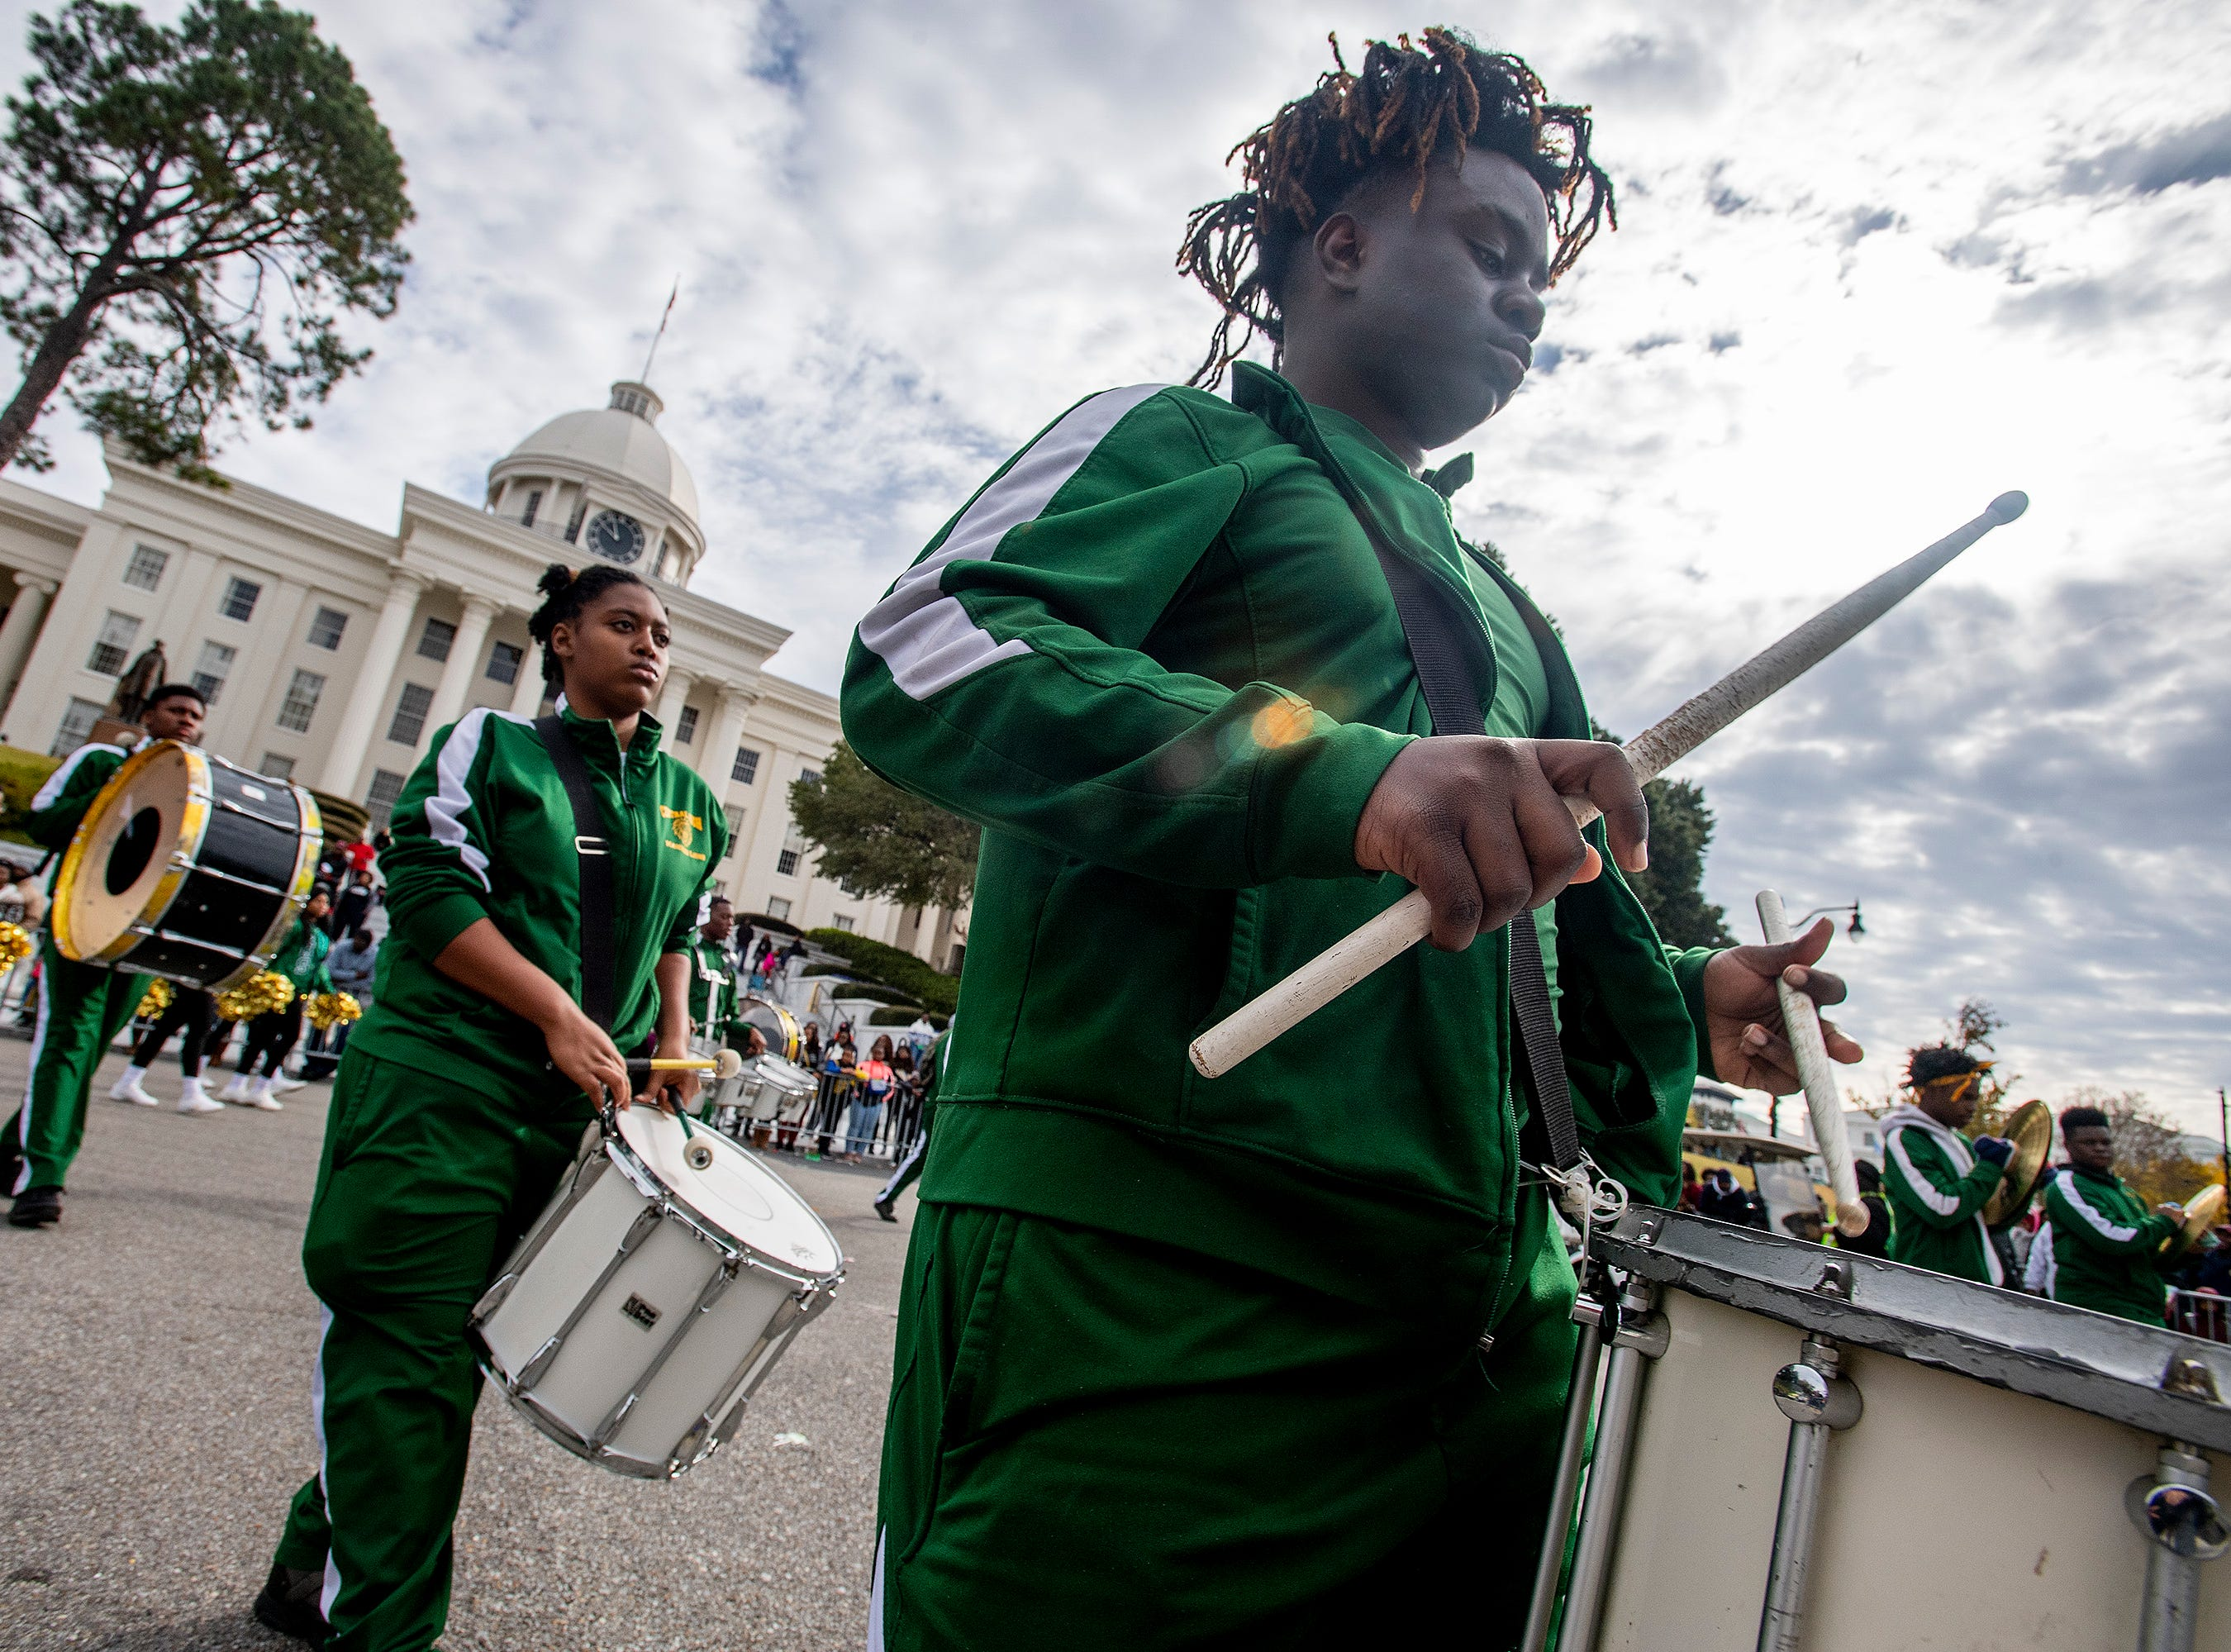 The Central High School Marching Band performs during the Turkey Day Classic Parade in downtown Montgomery, Ala., on Thanksgiving Day, Thursday November 22, 2018.